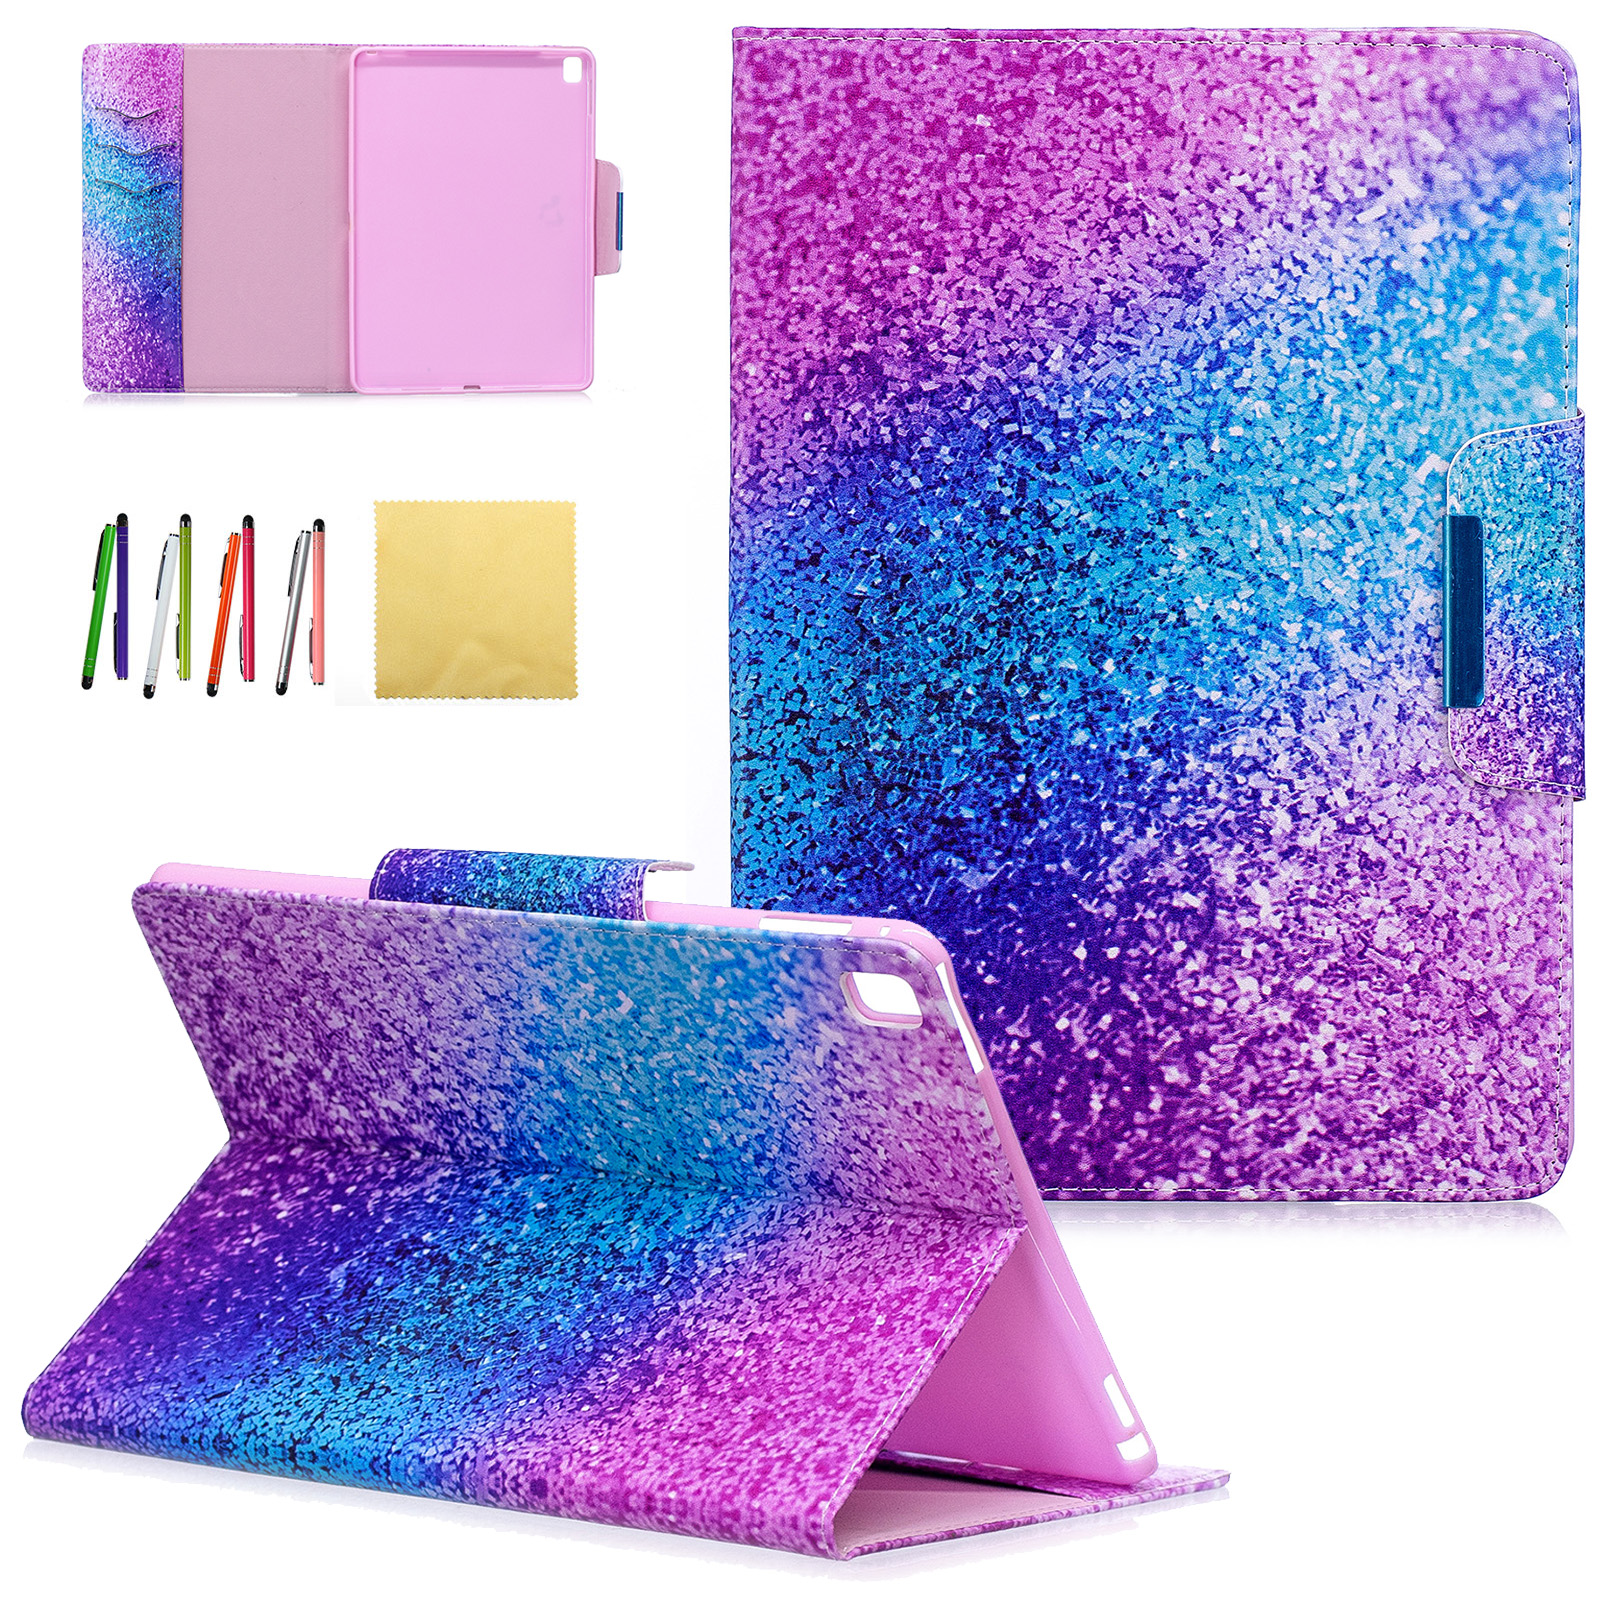 iPad Pro 9.7 Kids Case, Goodest Colorful PU Leather Stand Wallet Case Covers with Auto Sleep/Wake Function & Card Slots for Apple iPad Pro 9.7 inch 2016 Model, Colorful Sand